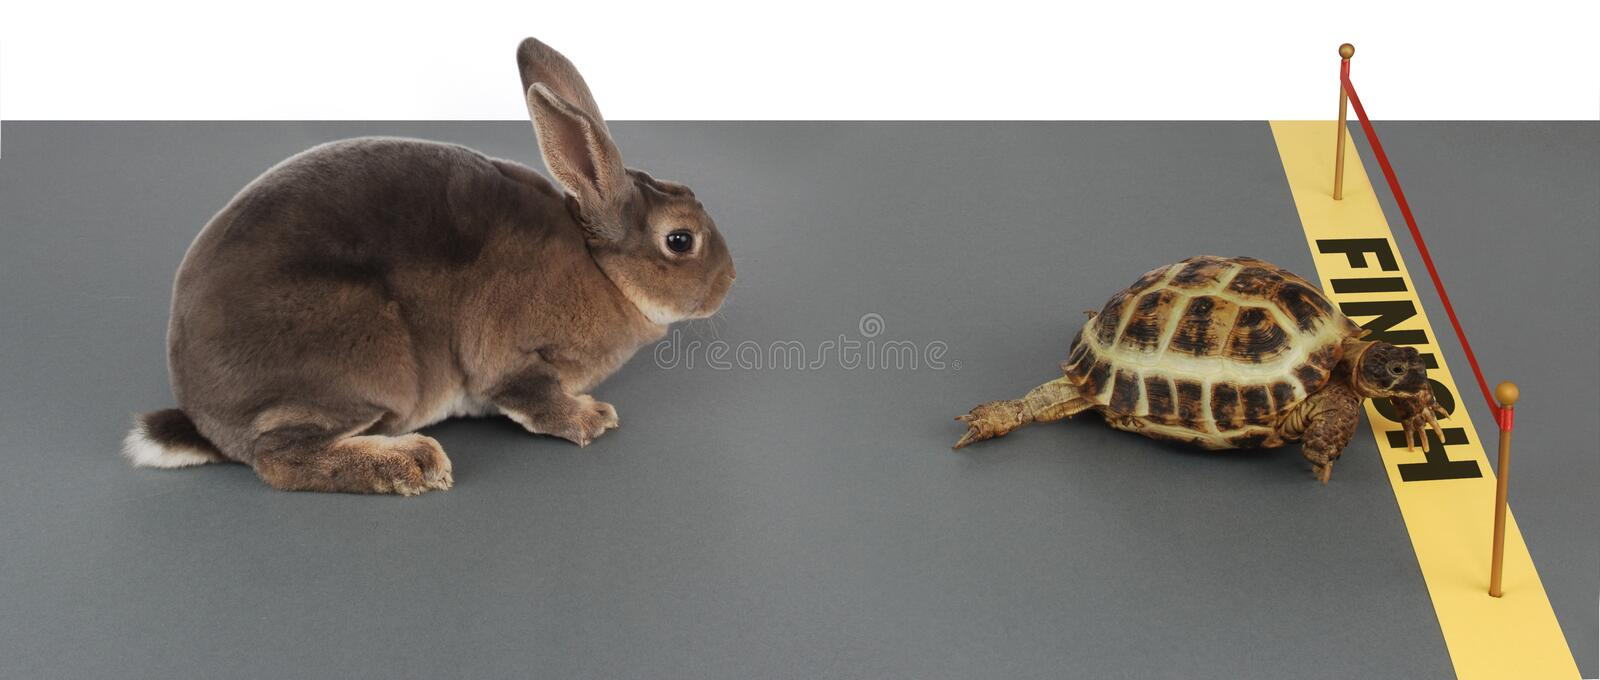 Tortoise-hare royalty free stock photo